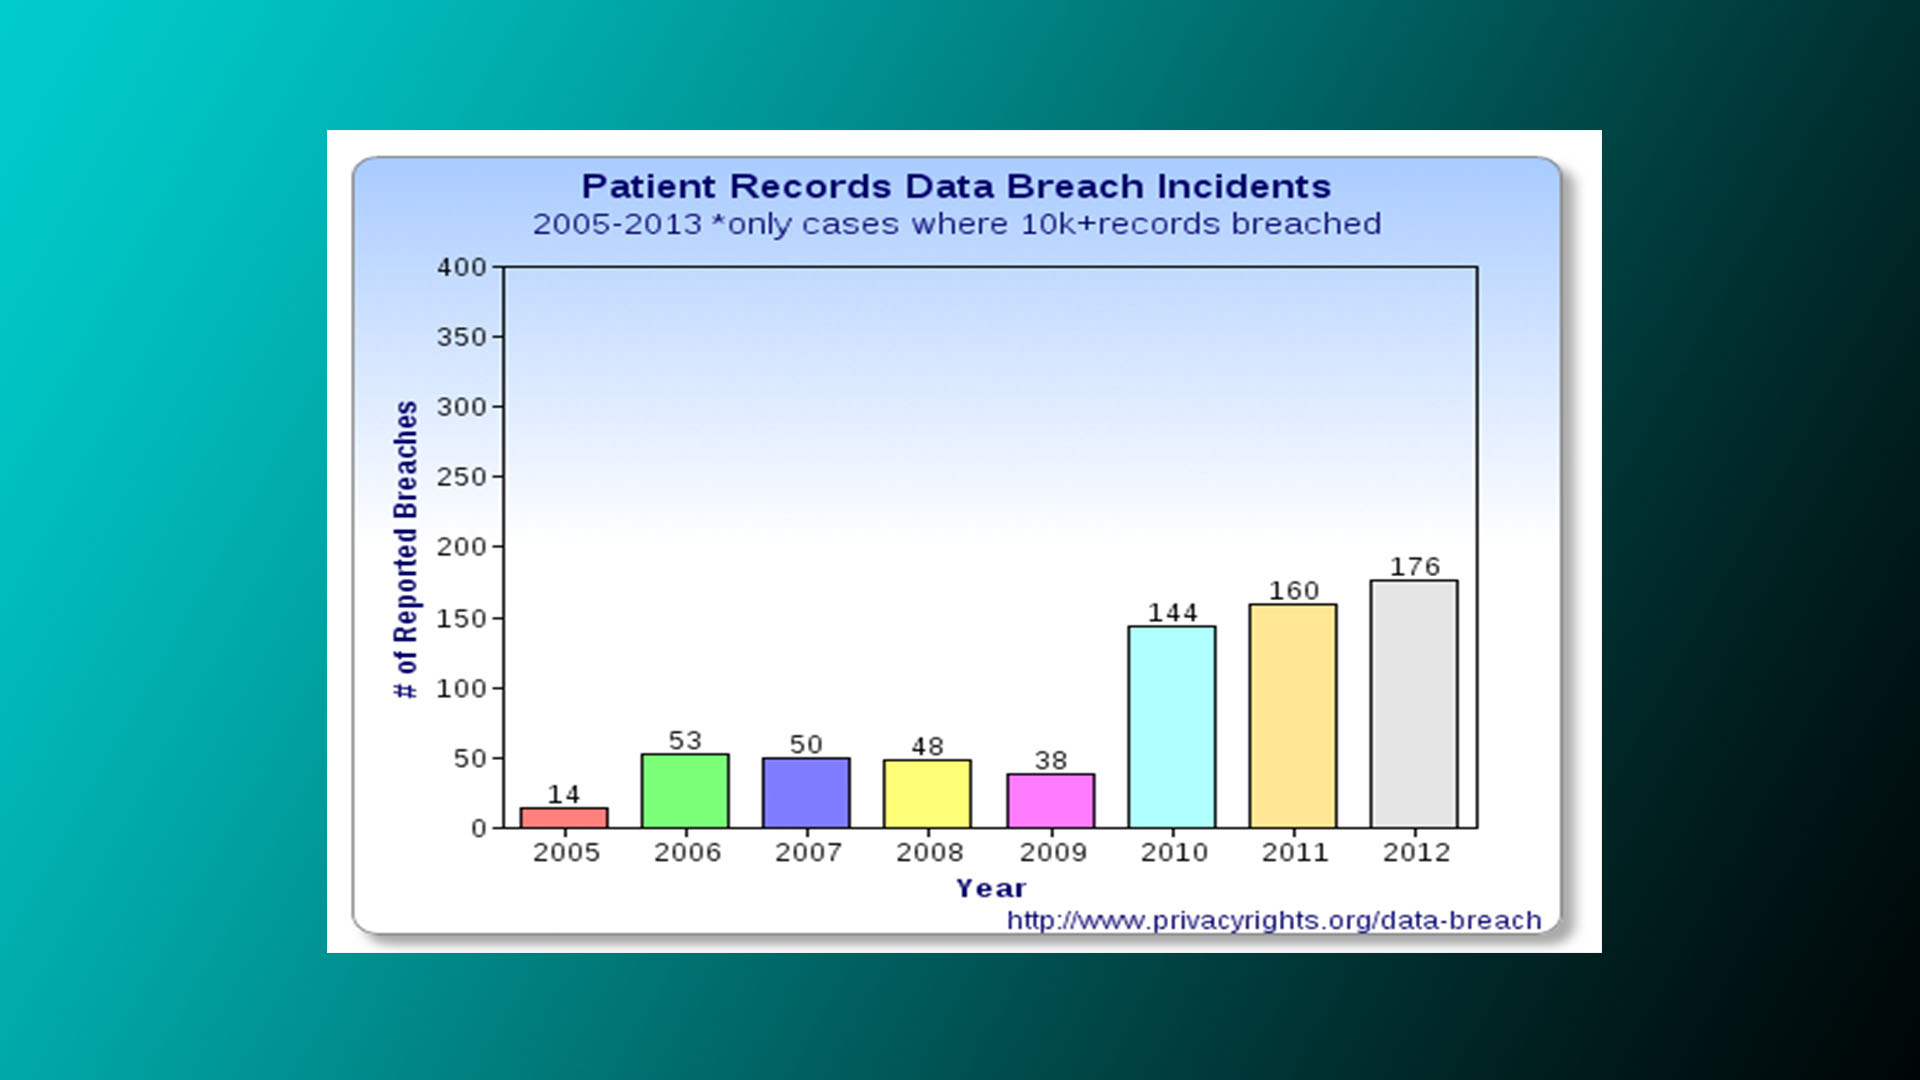 Reports of patient health record data breaches have increased steadily since 2005